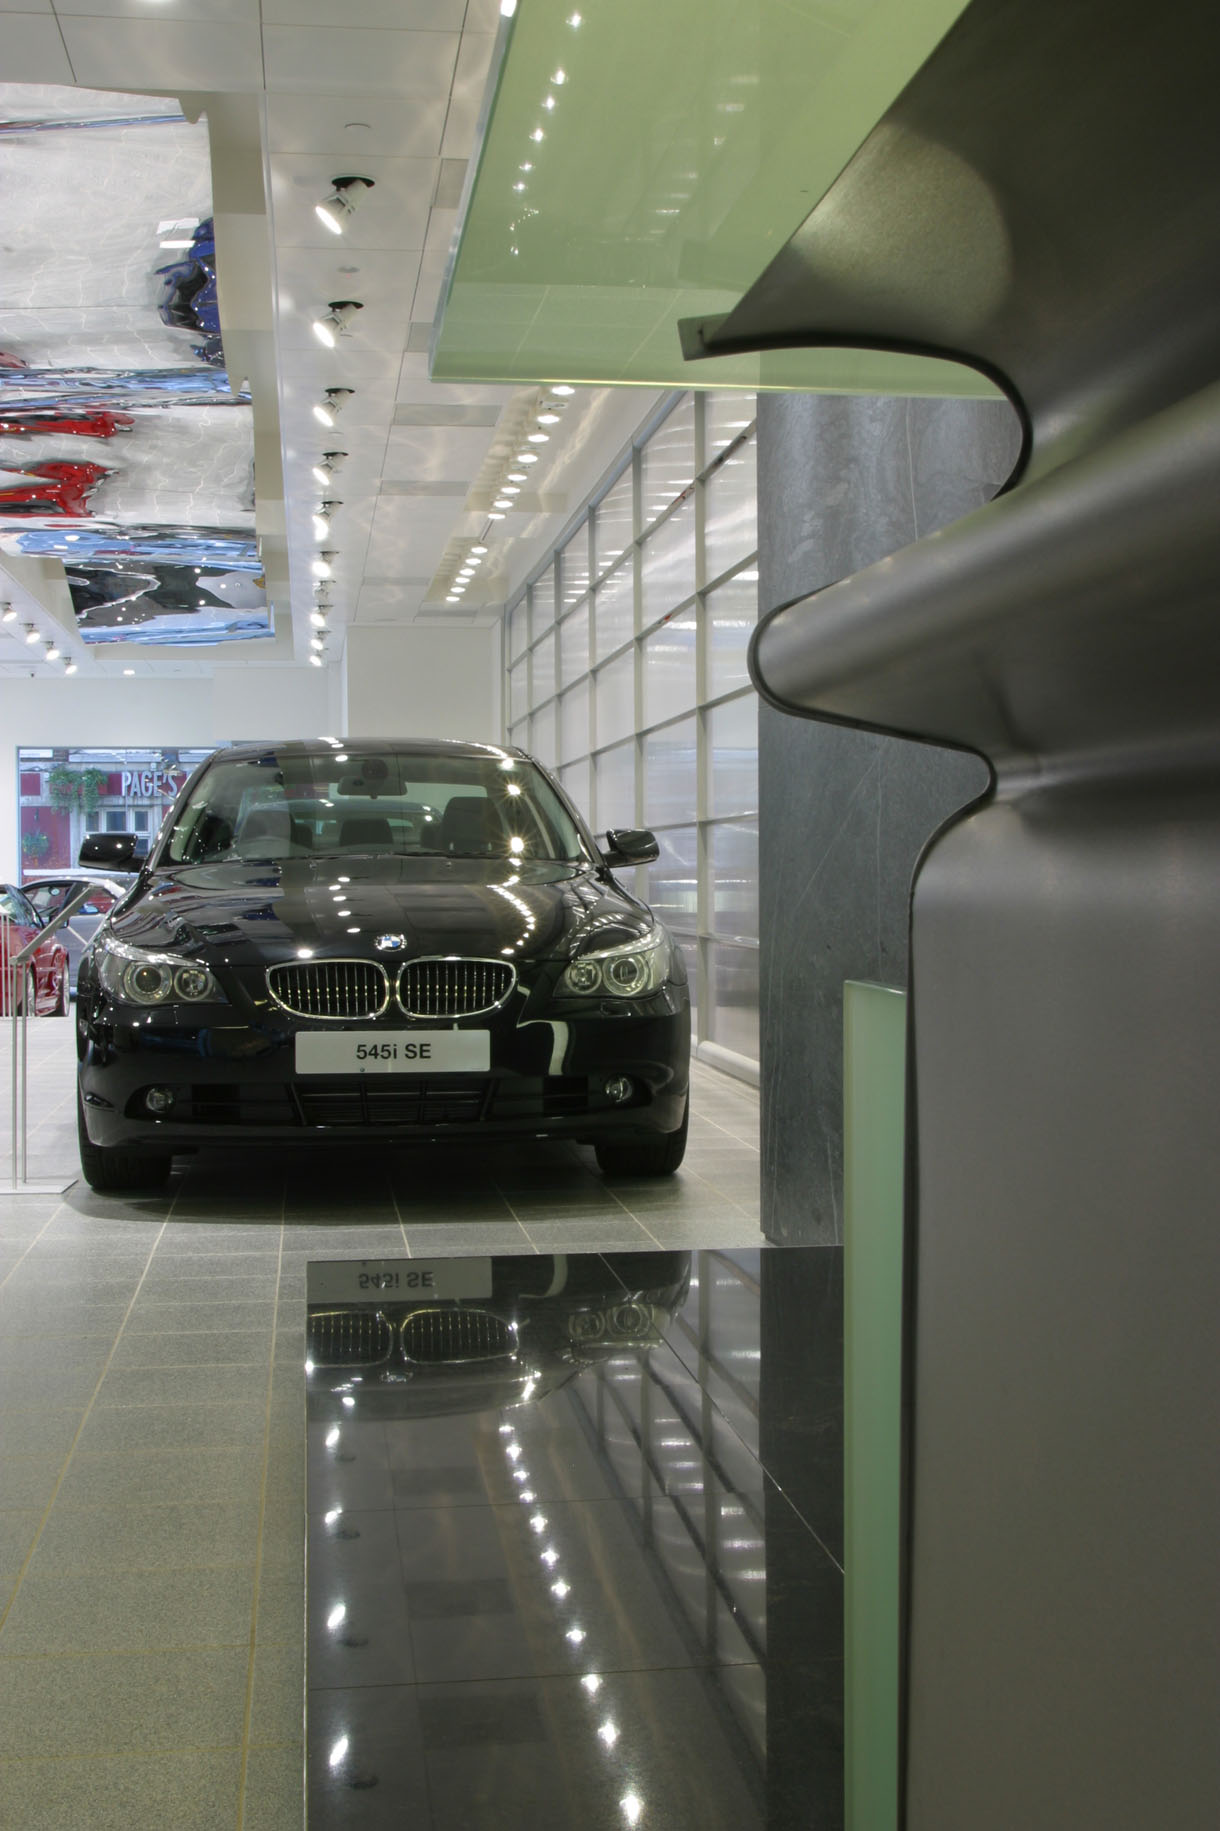 BMW Marsham Street Black 545i SE Reception Desk Ceiling